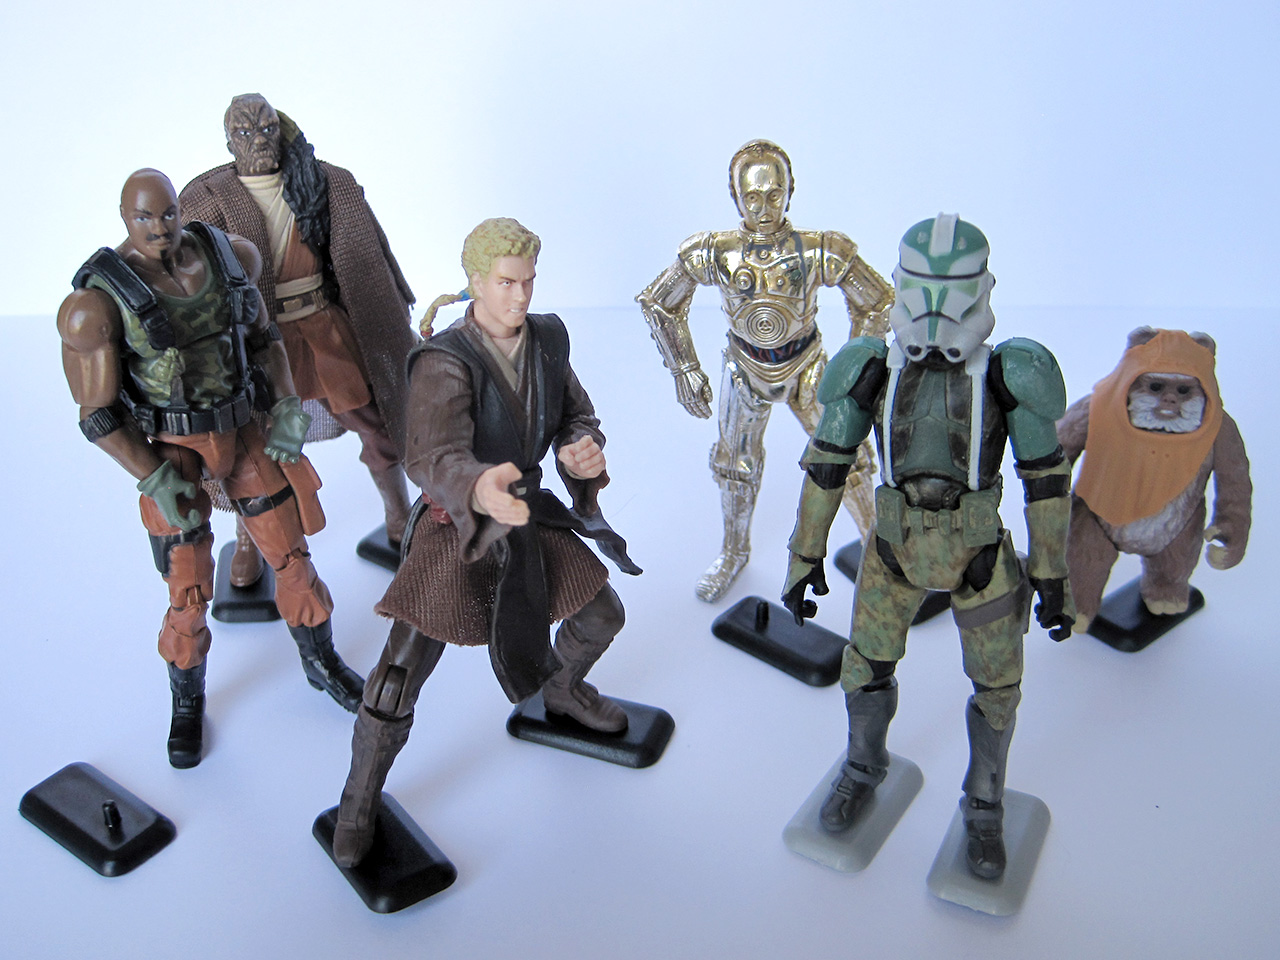 The Earth Modern Action Figure Stands